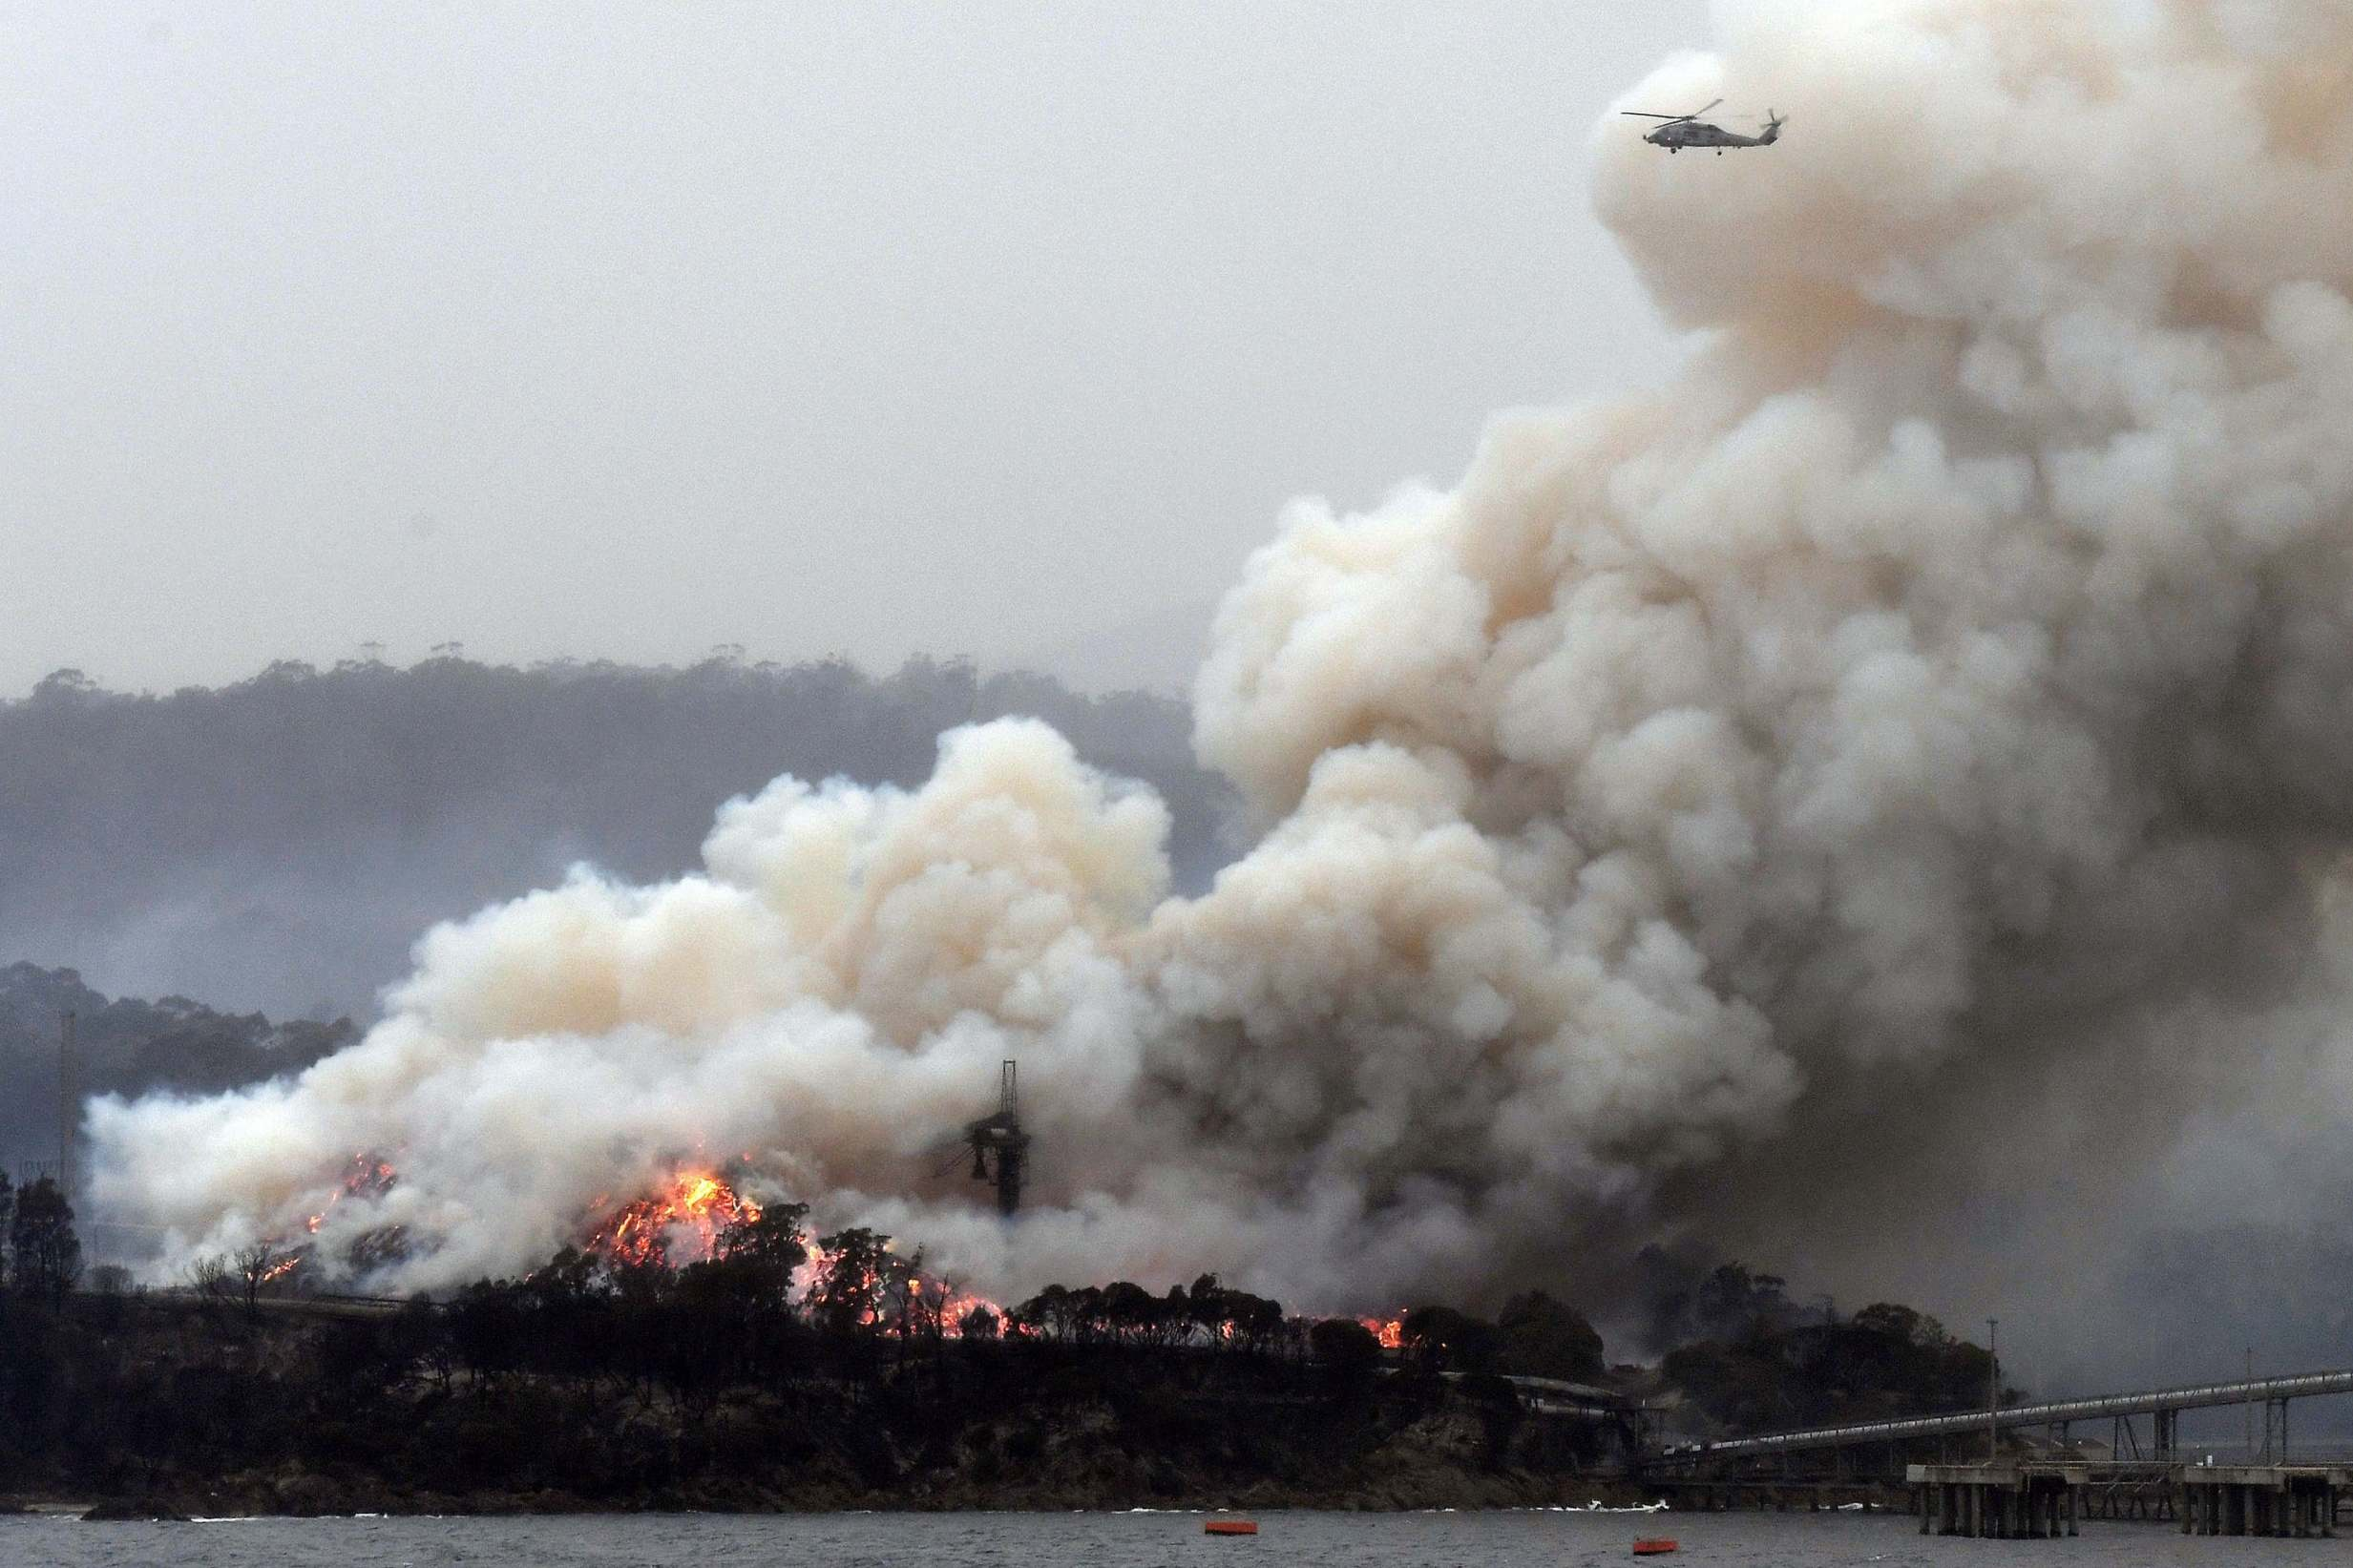 Australia fires: Yearly greenhouse gas emissions nearly double due to historic blazes